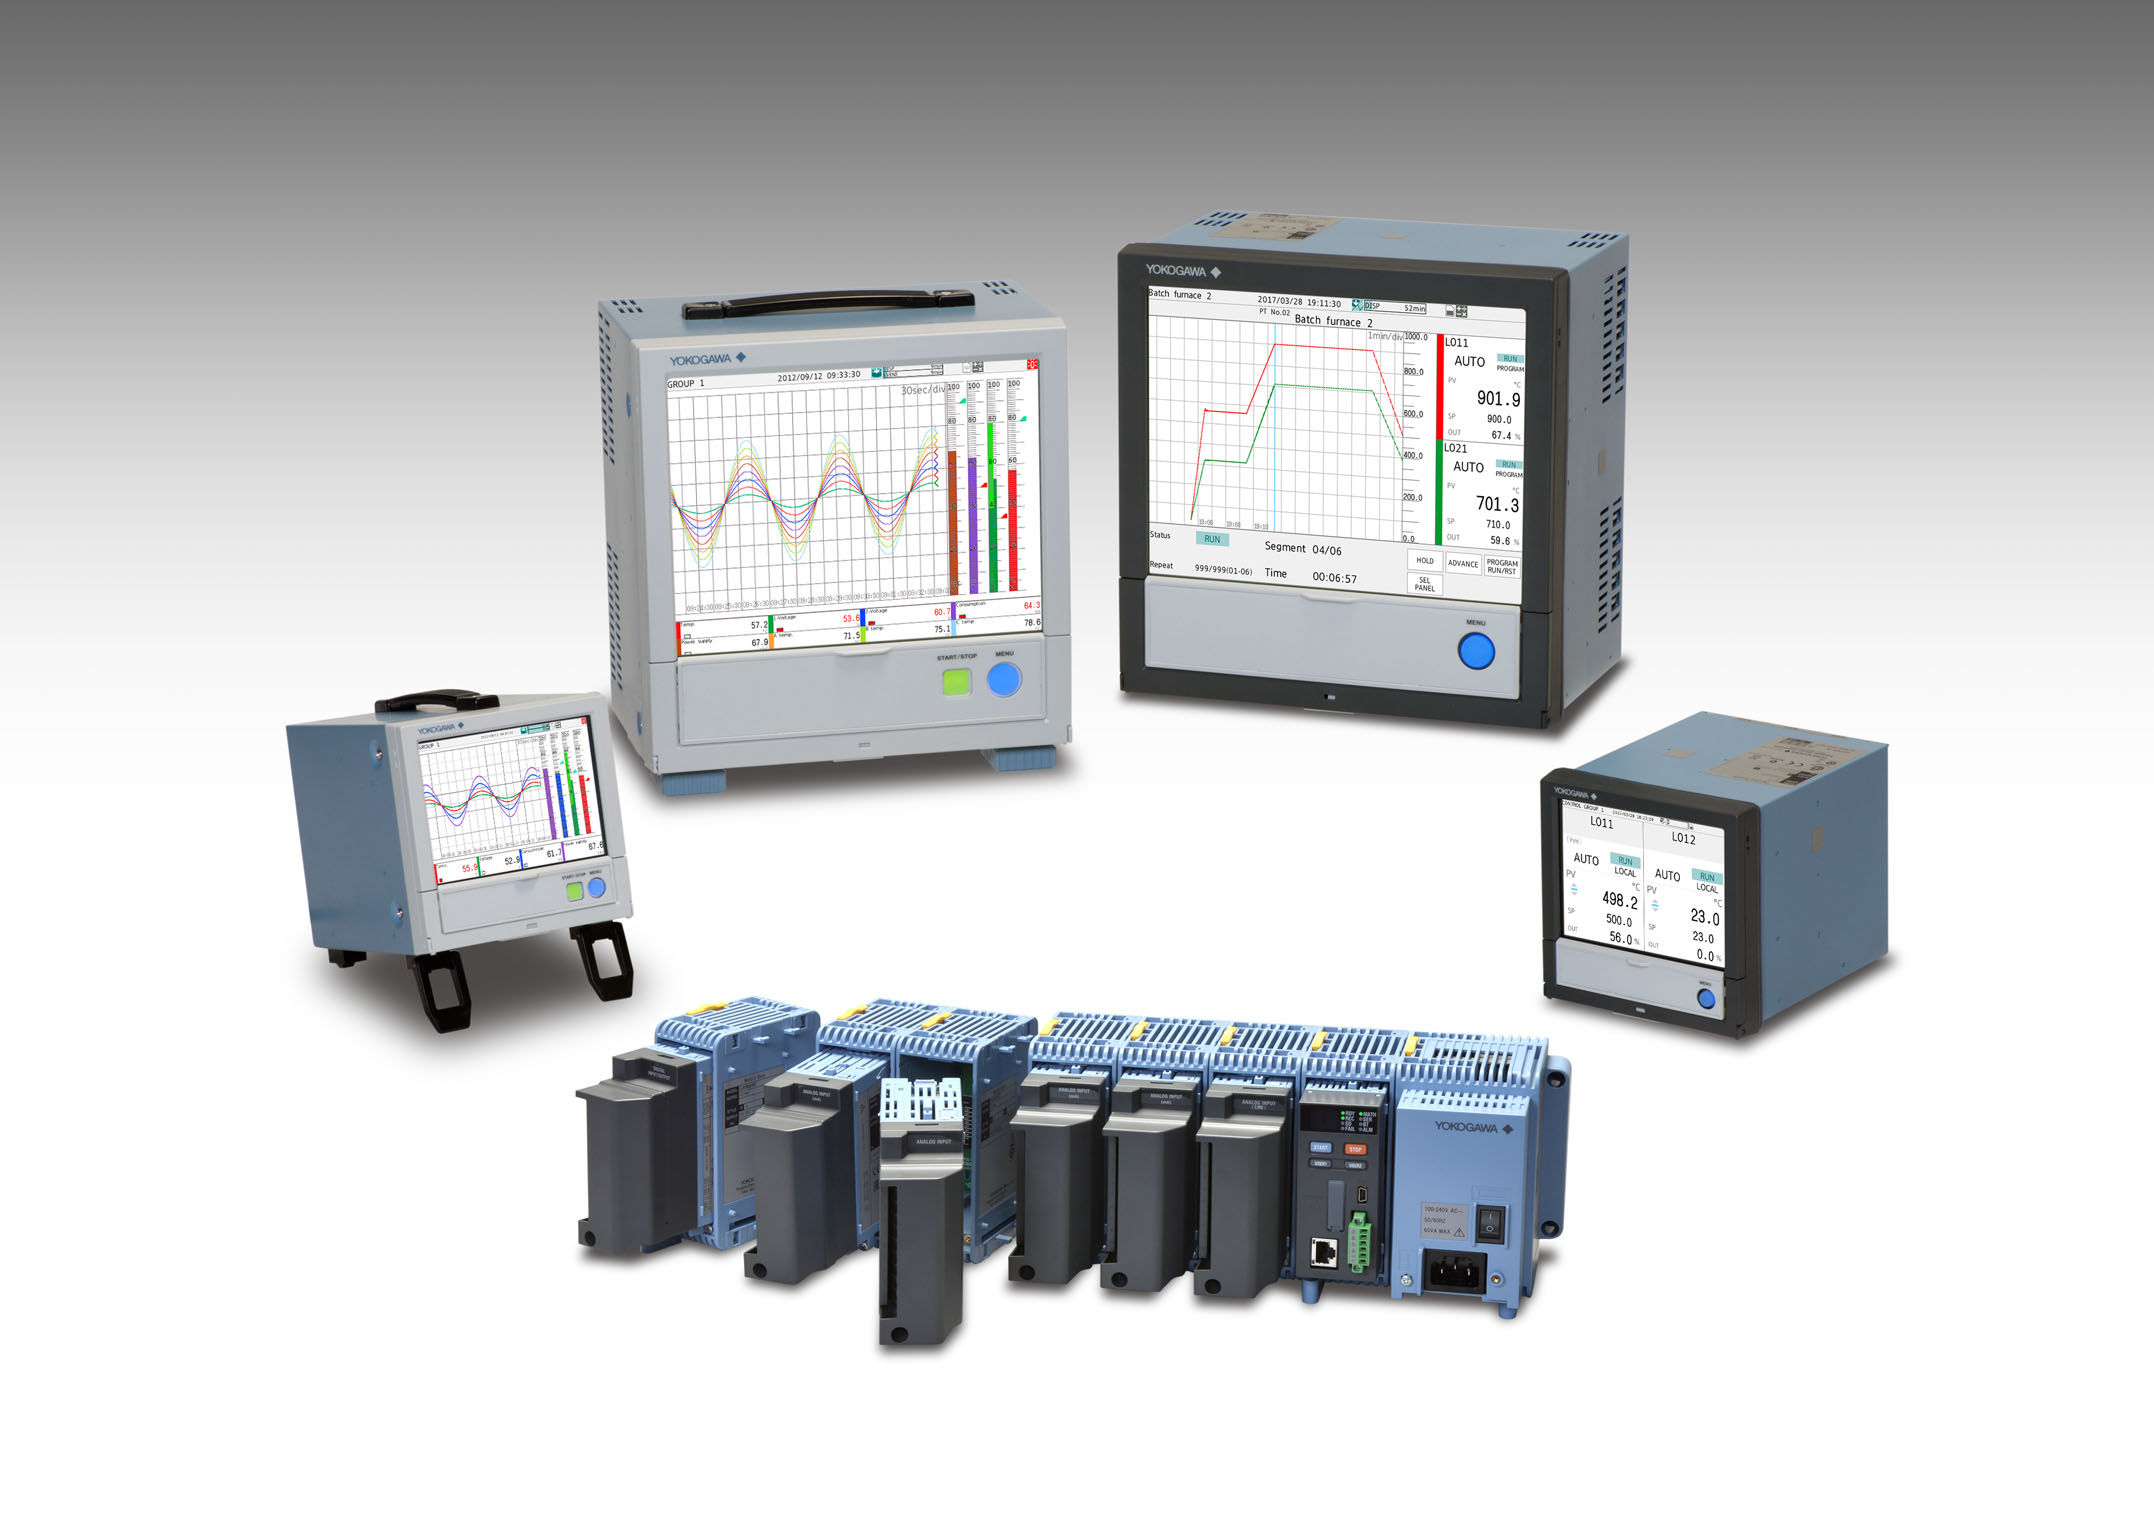 Data Panel Acquisition : Yokogawa introduces release of the smartdac gx gp